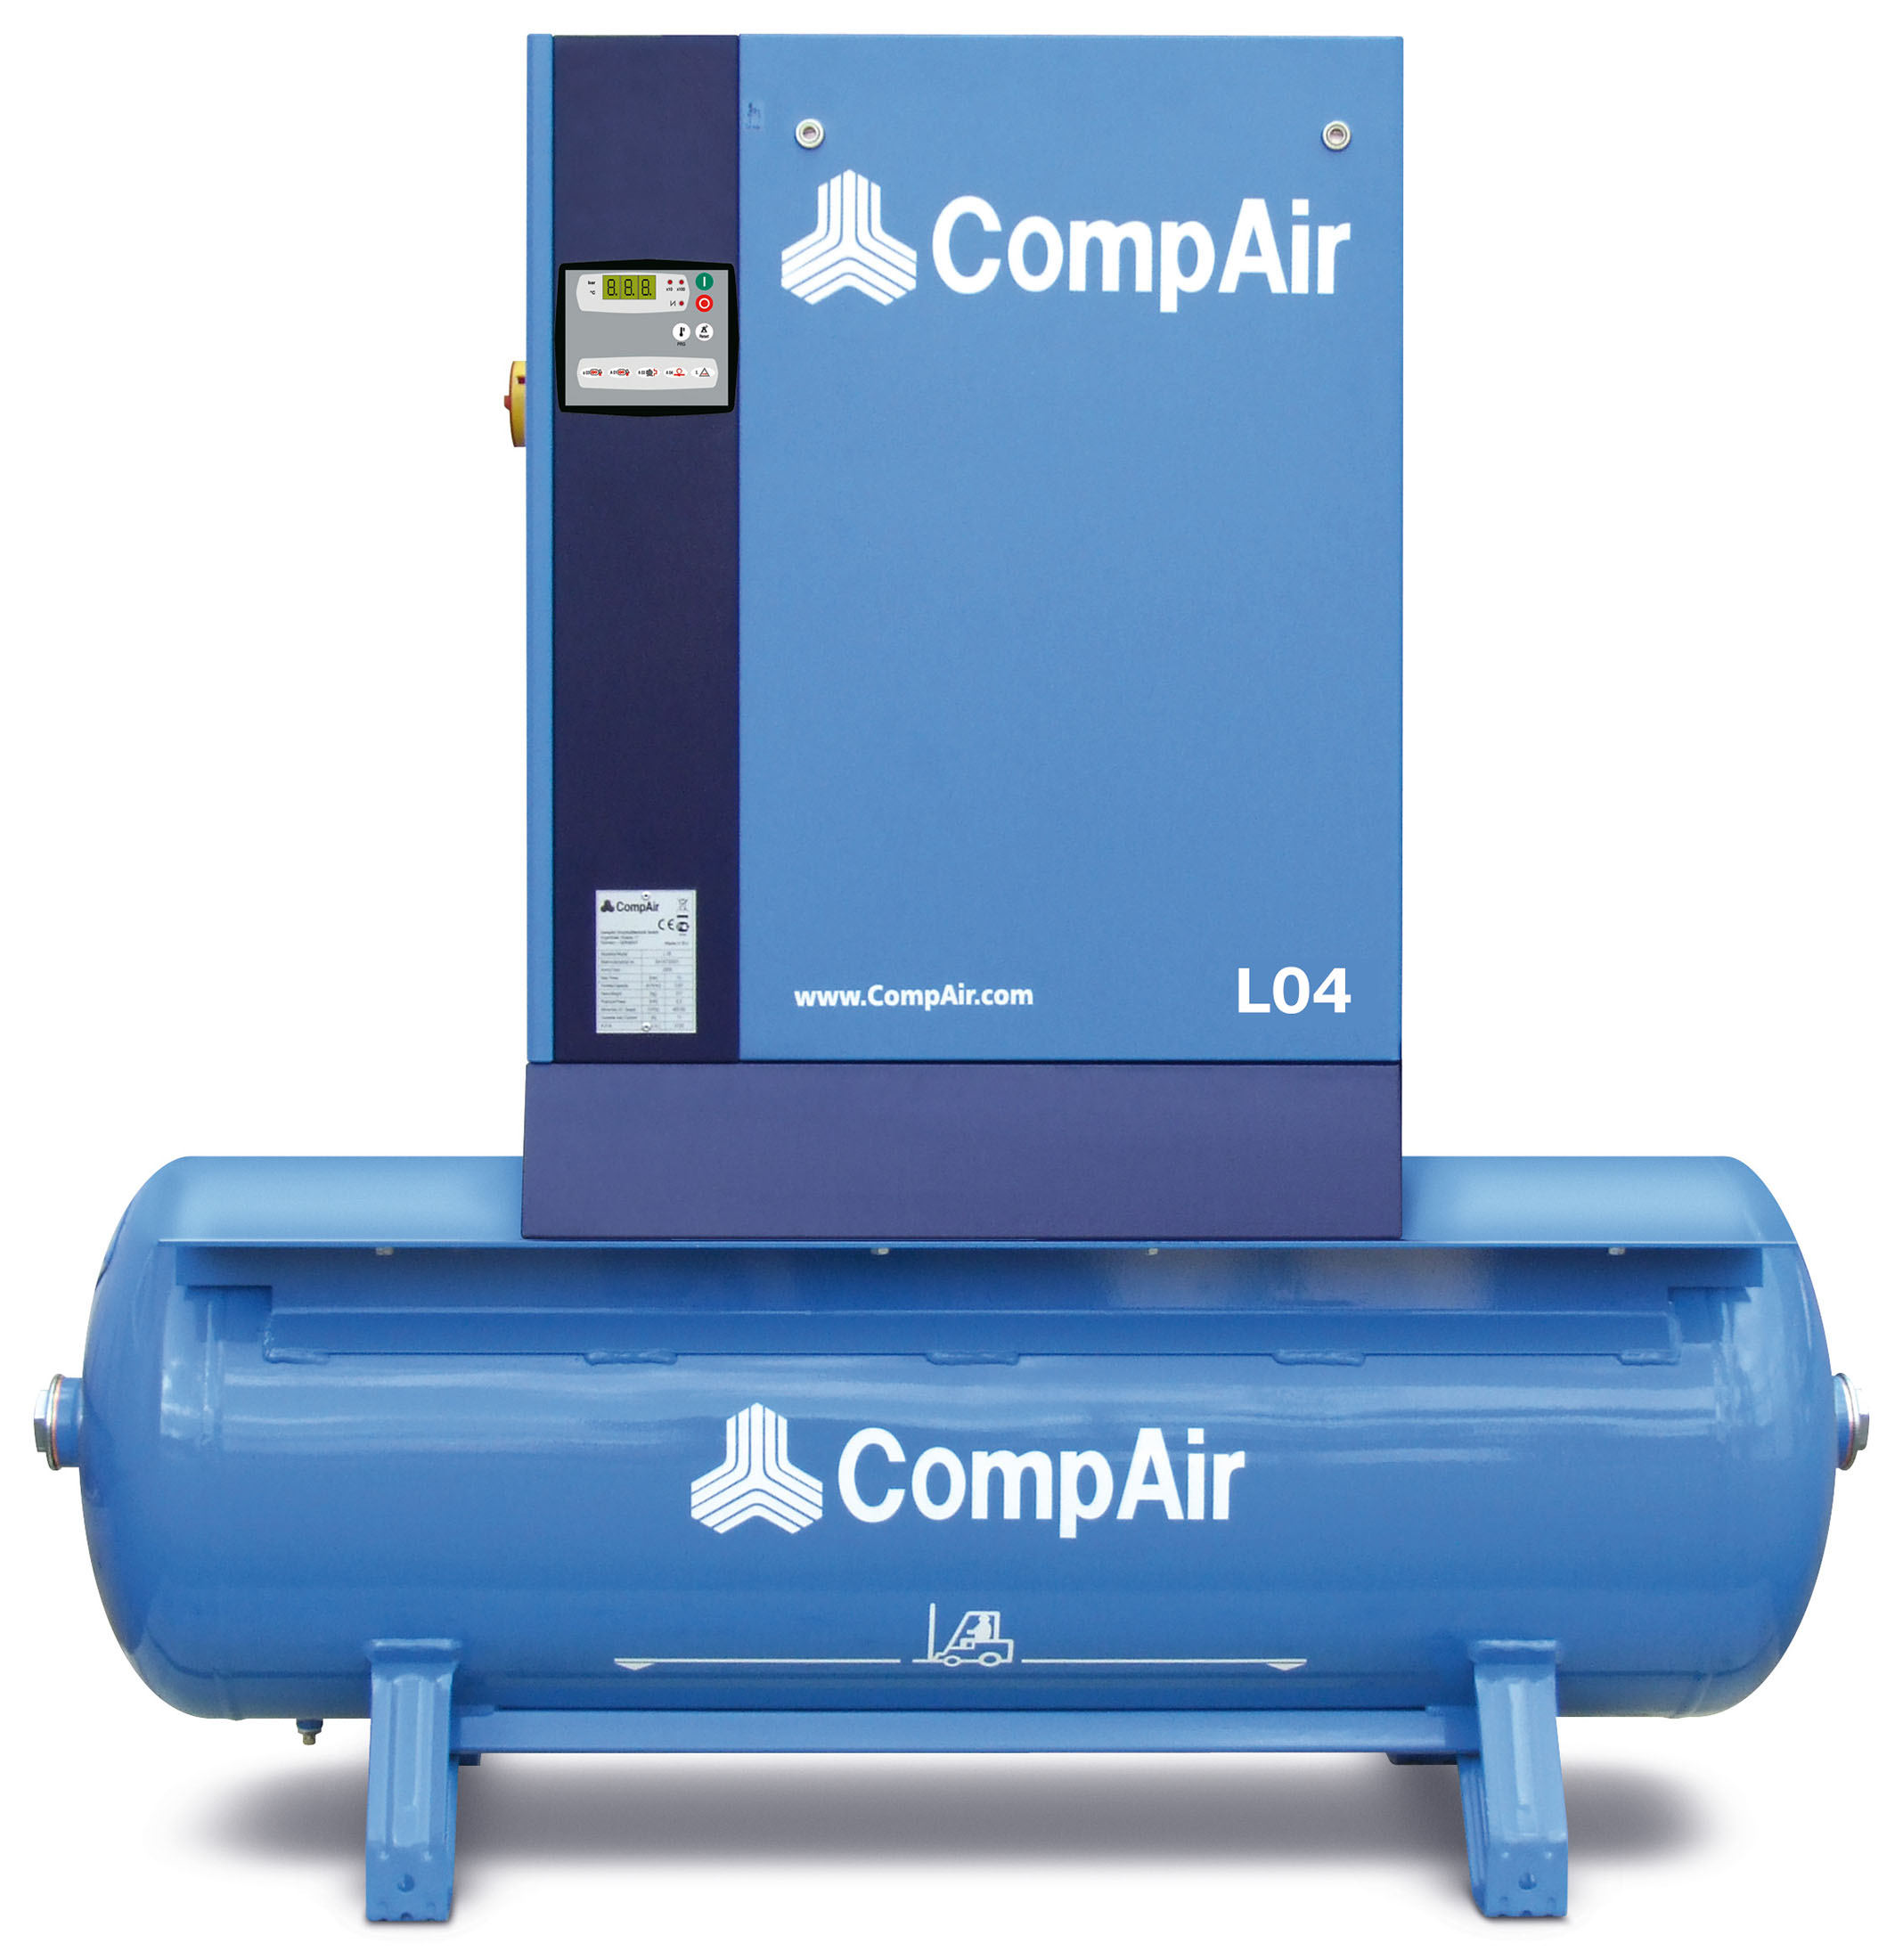 Midlands UK supplier of CompAir L04RM air compressor